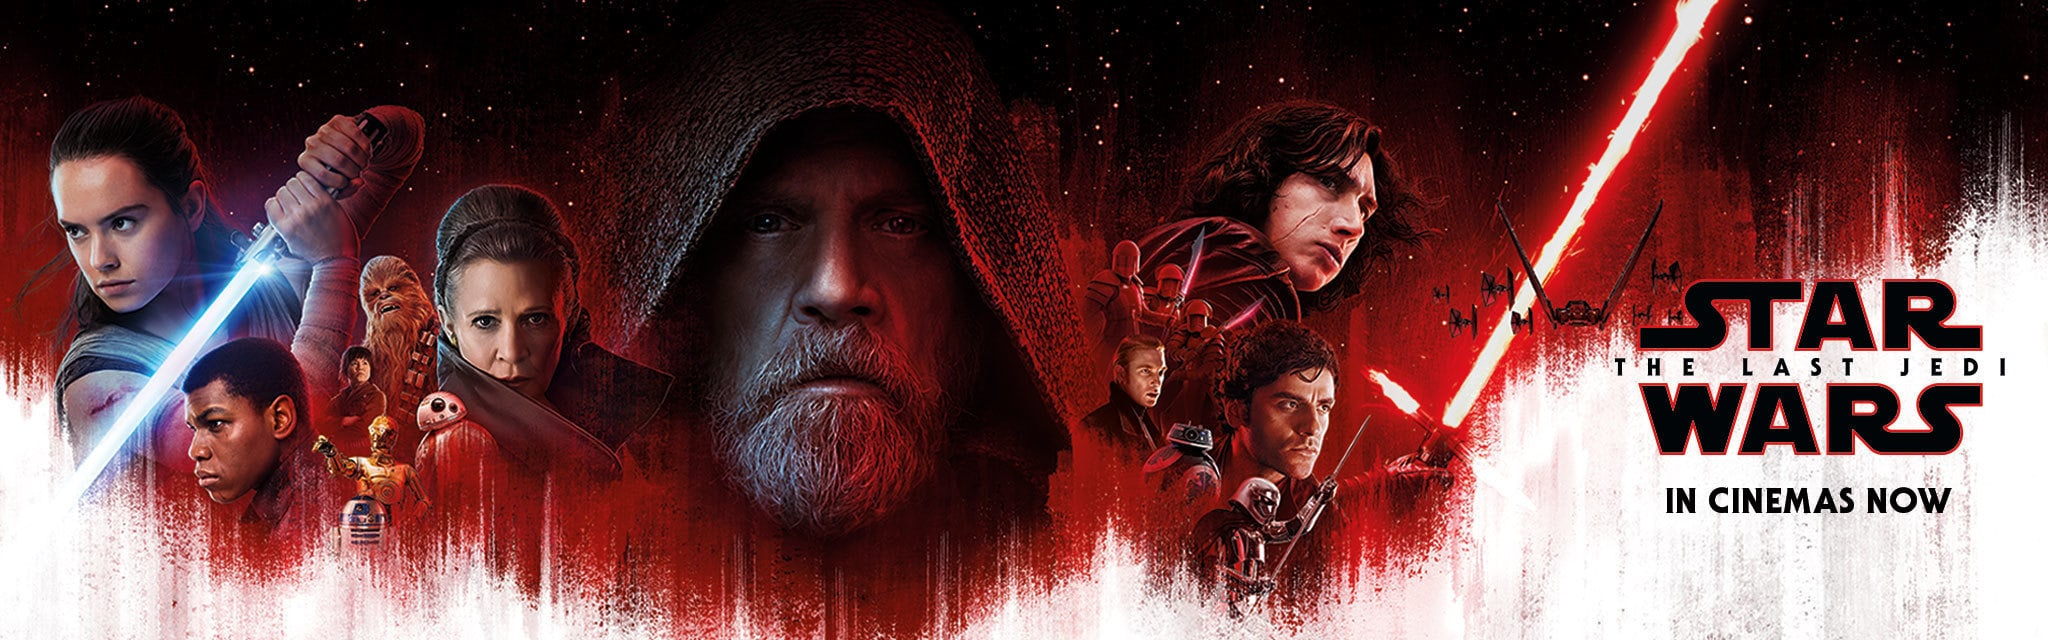 Star Wars - The Last Jedi - In Cinemas Now - SEA